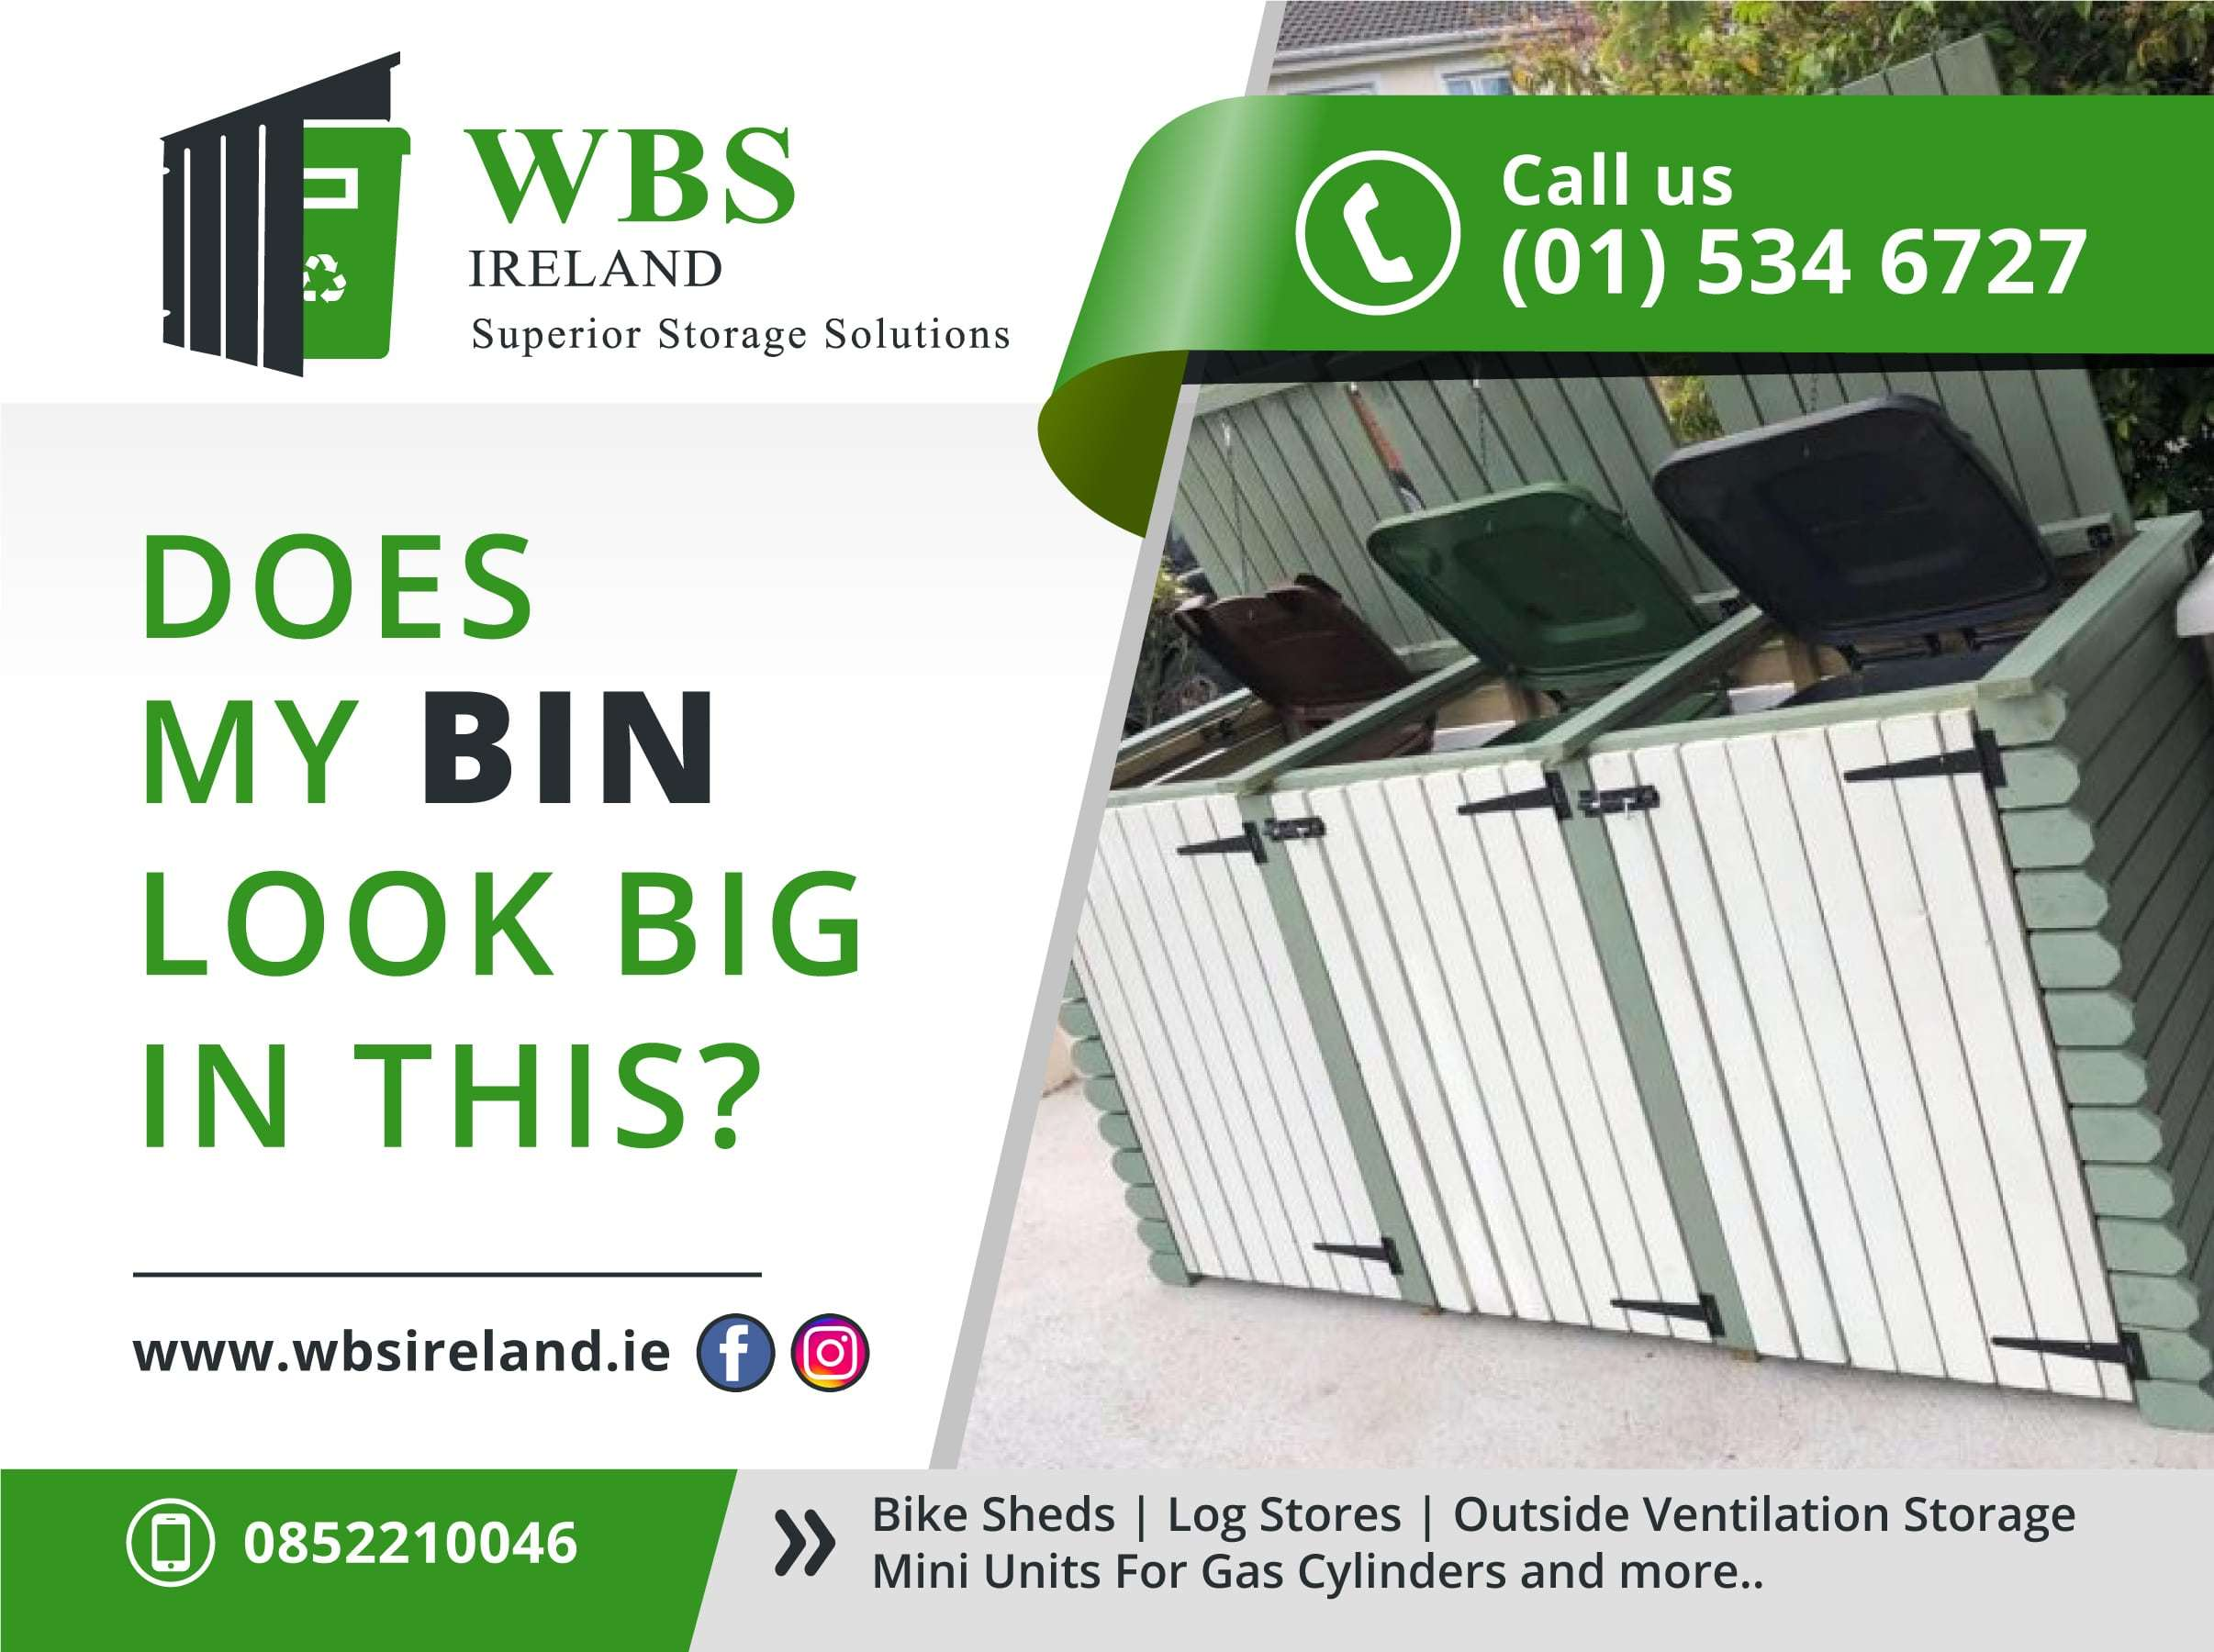 wheelie bin storage ireland wbsireland.ie